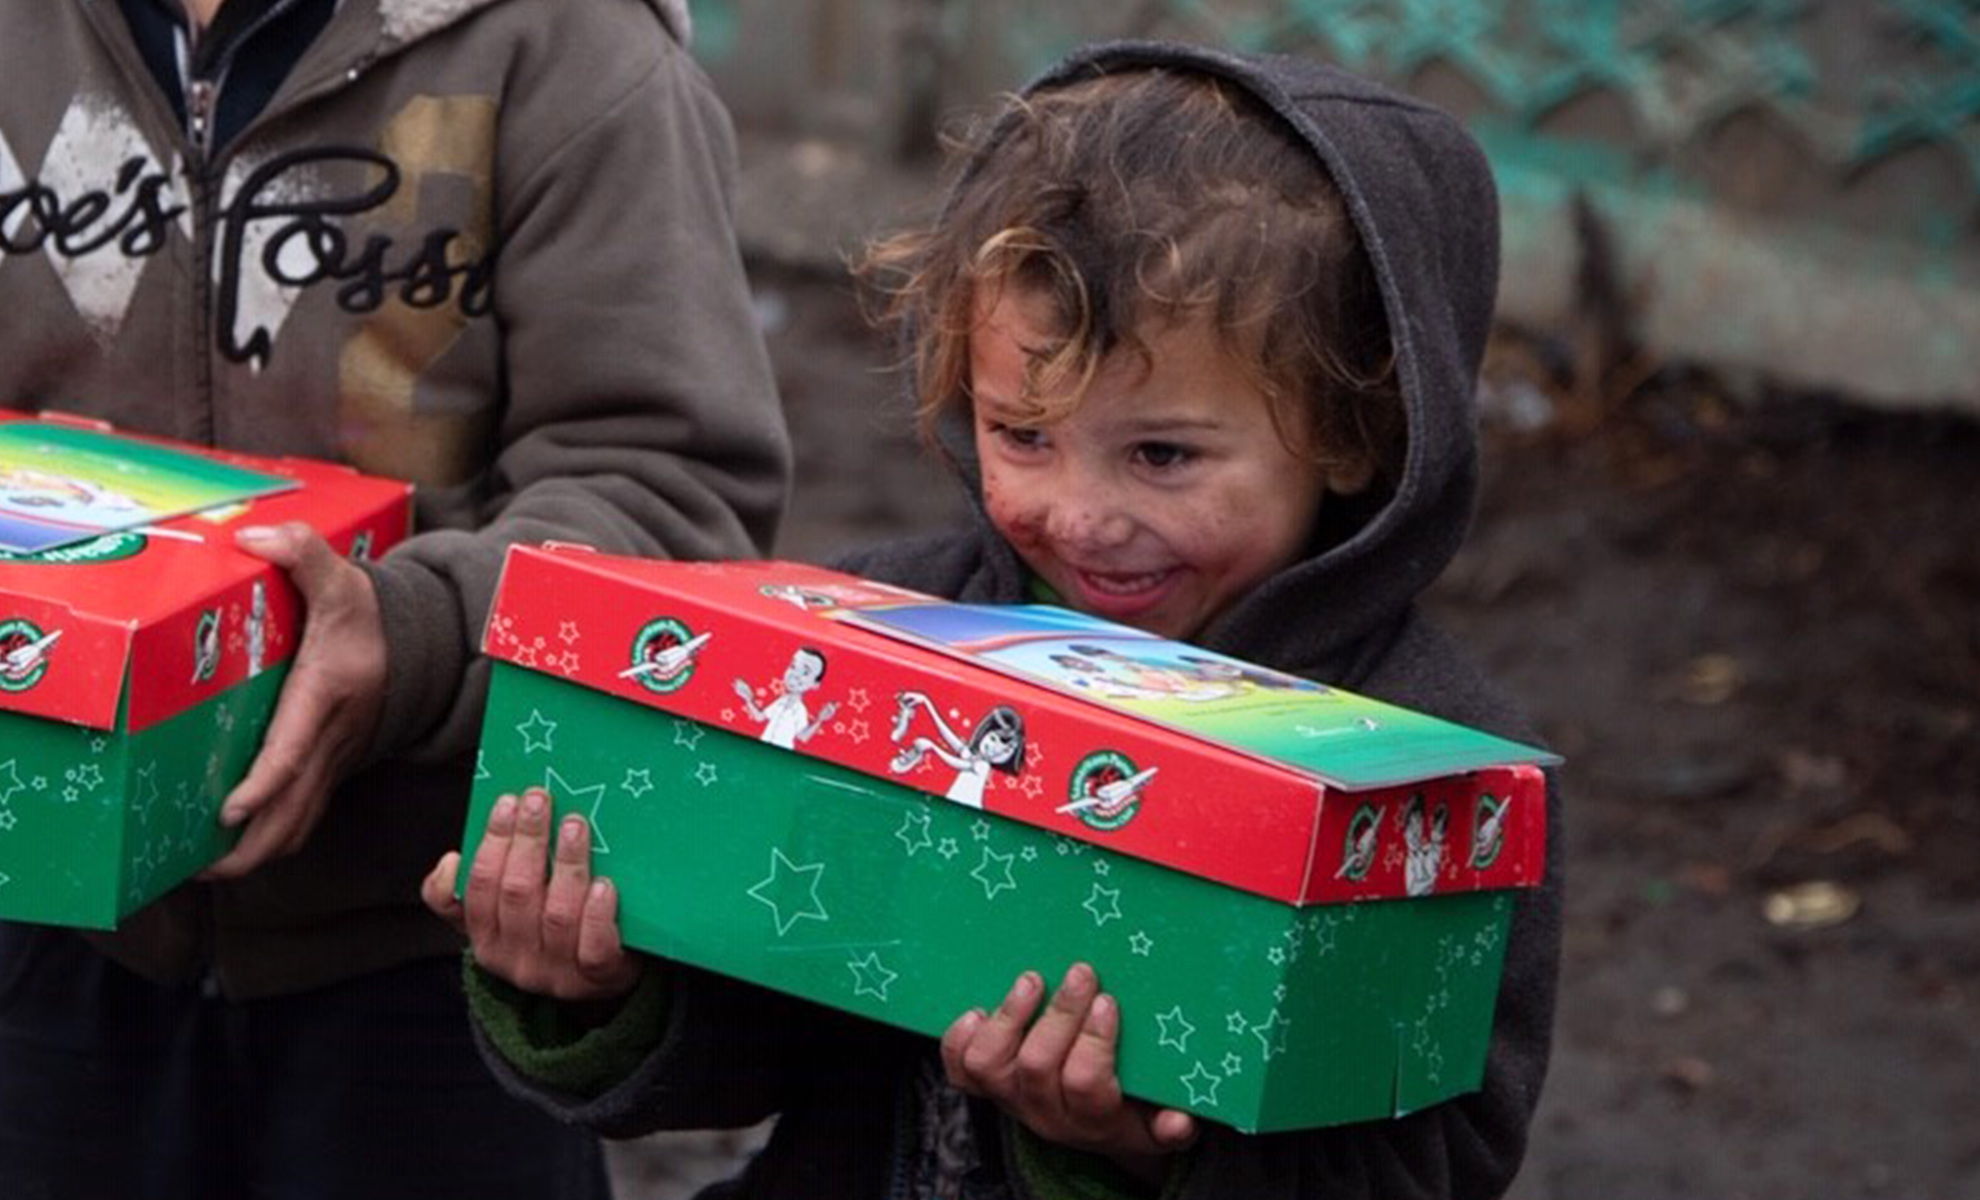 Header image - Young boy holding shoebox gift